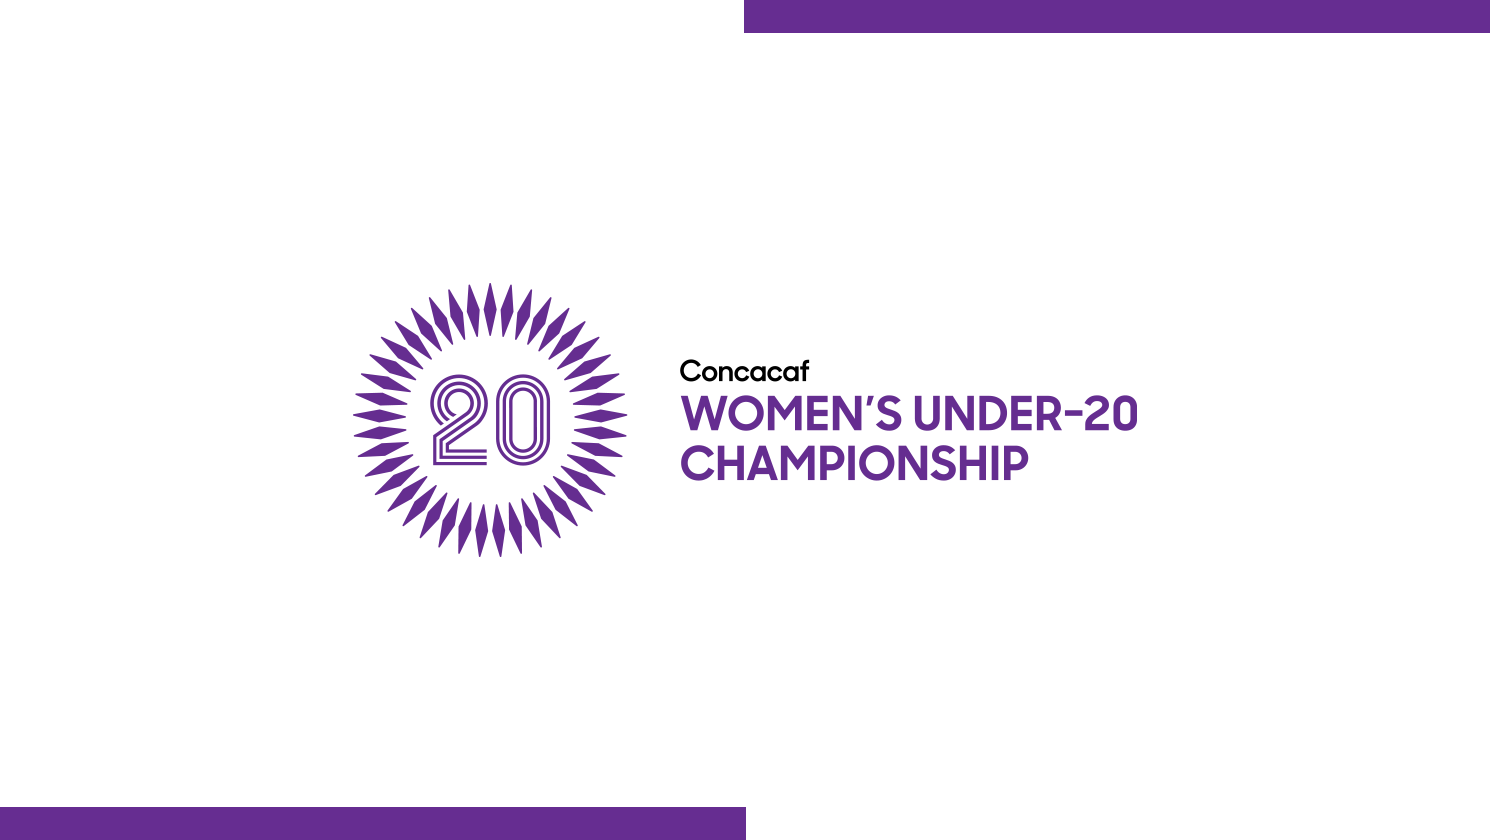 Curaçao announced as host for 2022 Concacaf Women's Under-20 Championship Qualifiers